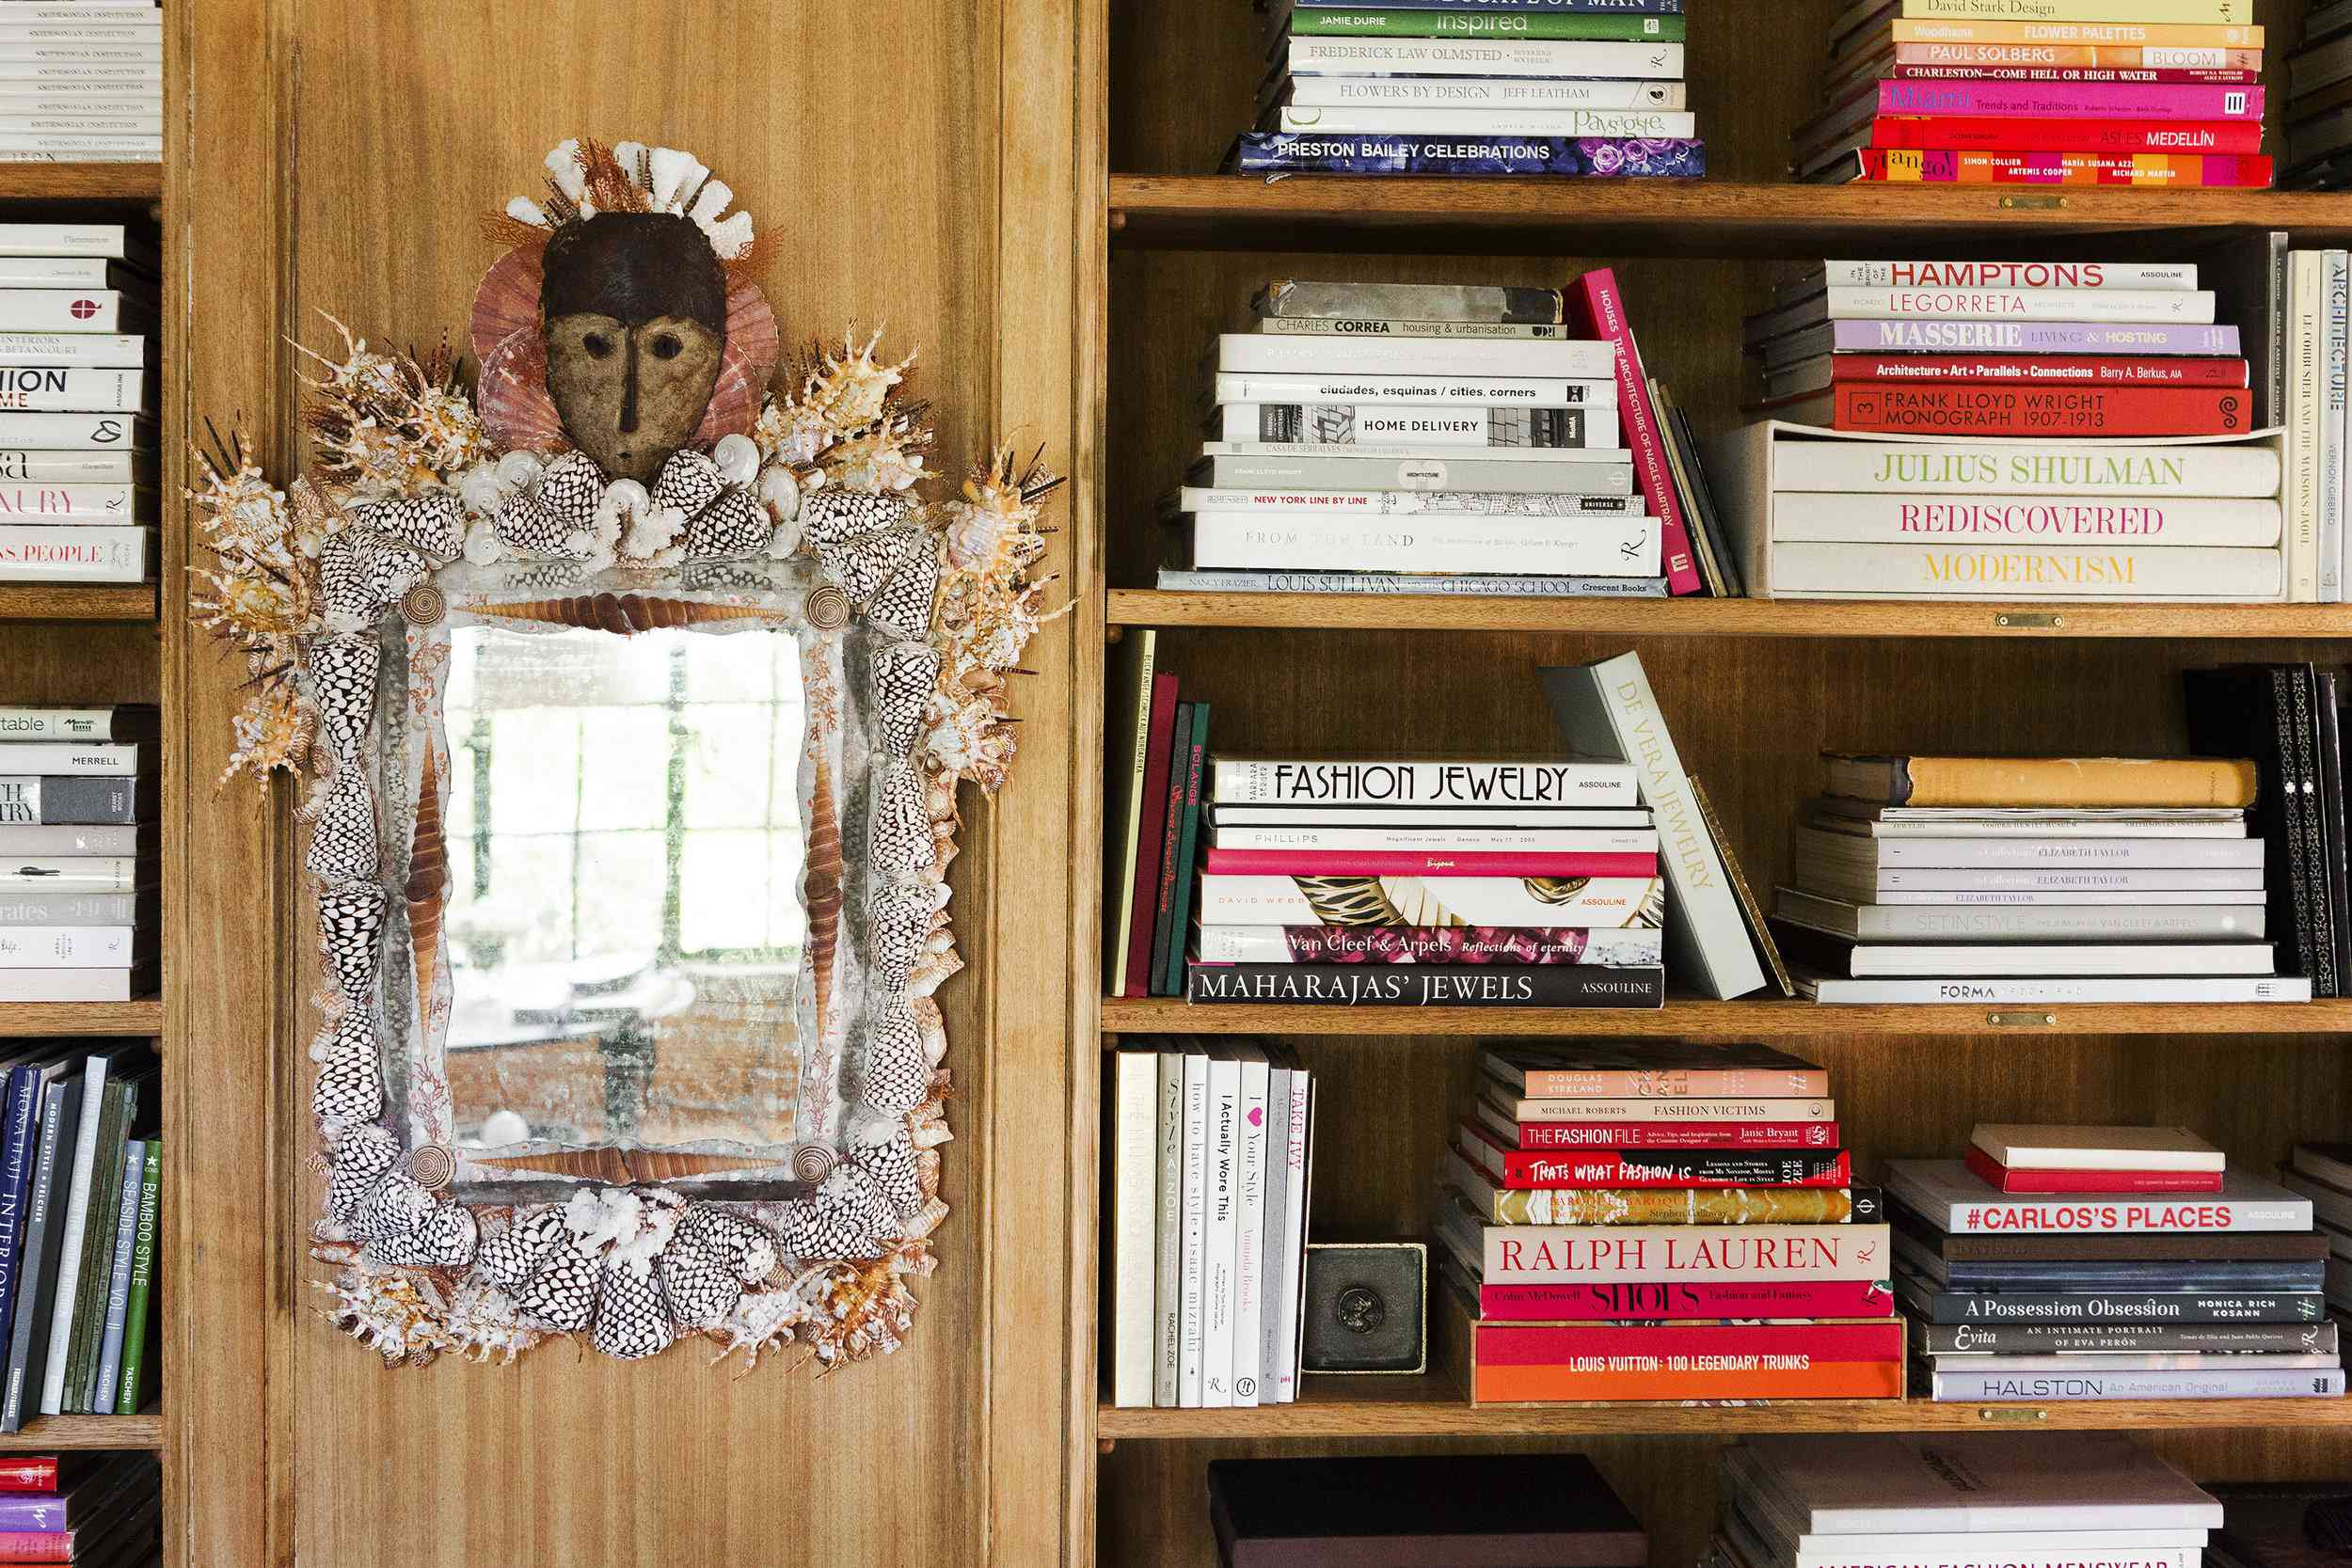 Wooden built-in bookshelves in an eclectic space with a quirky folk-art mirror bedecked in seashells.